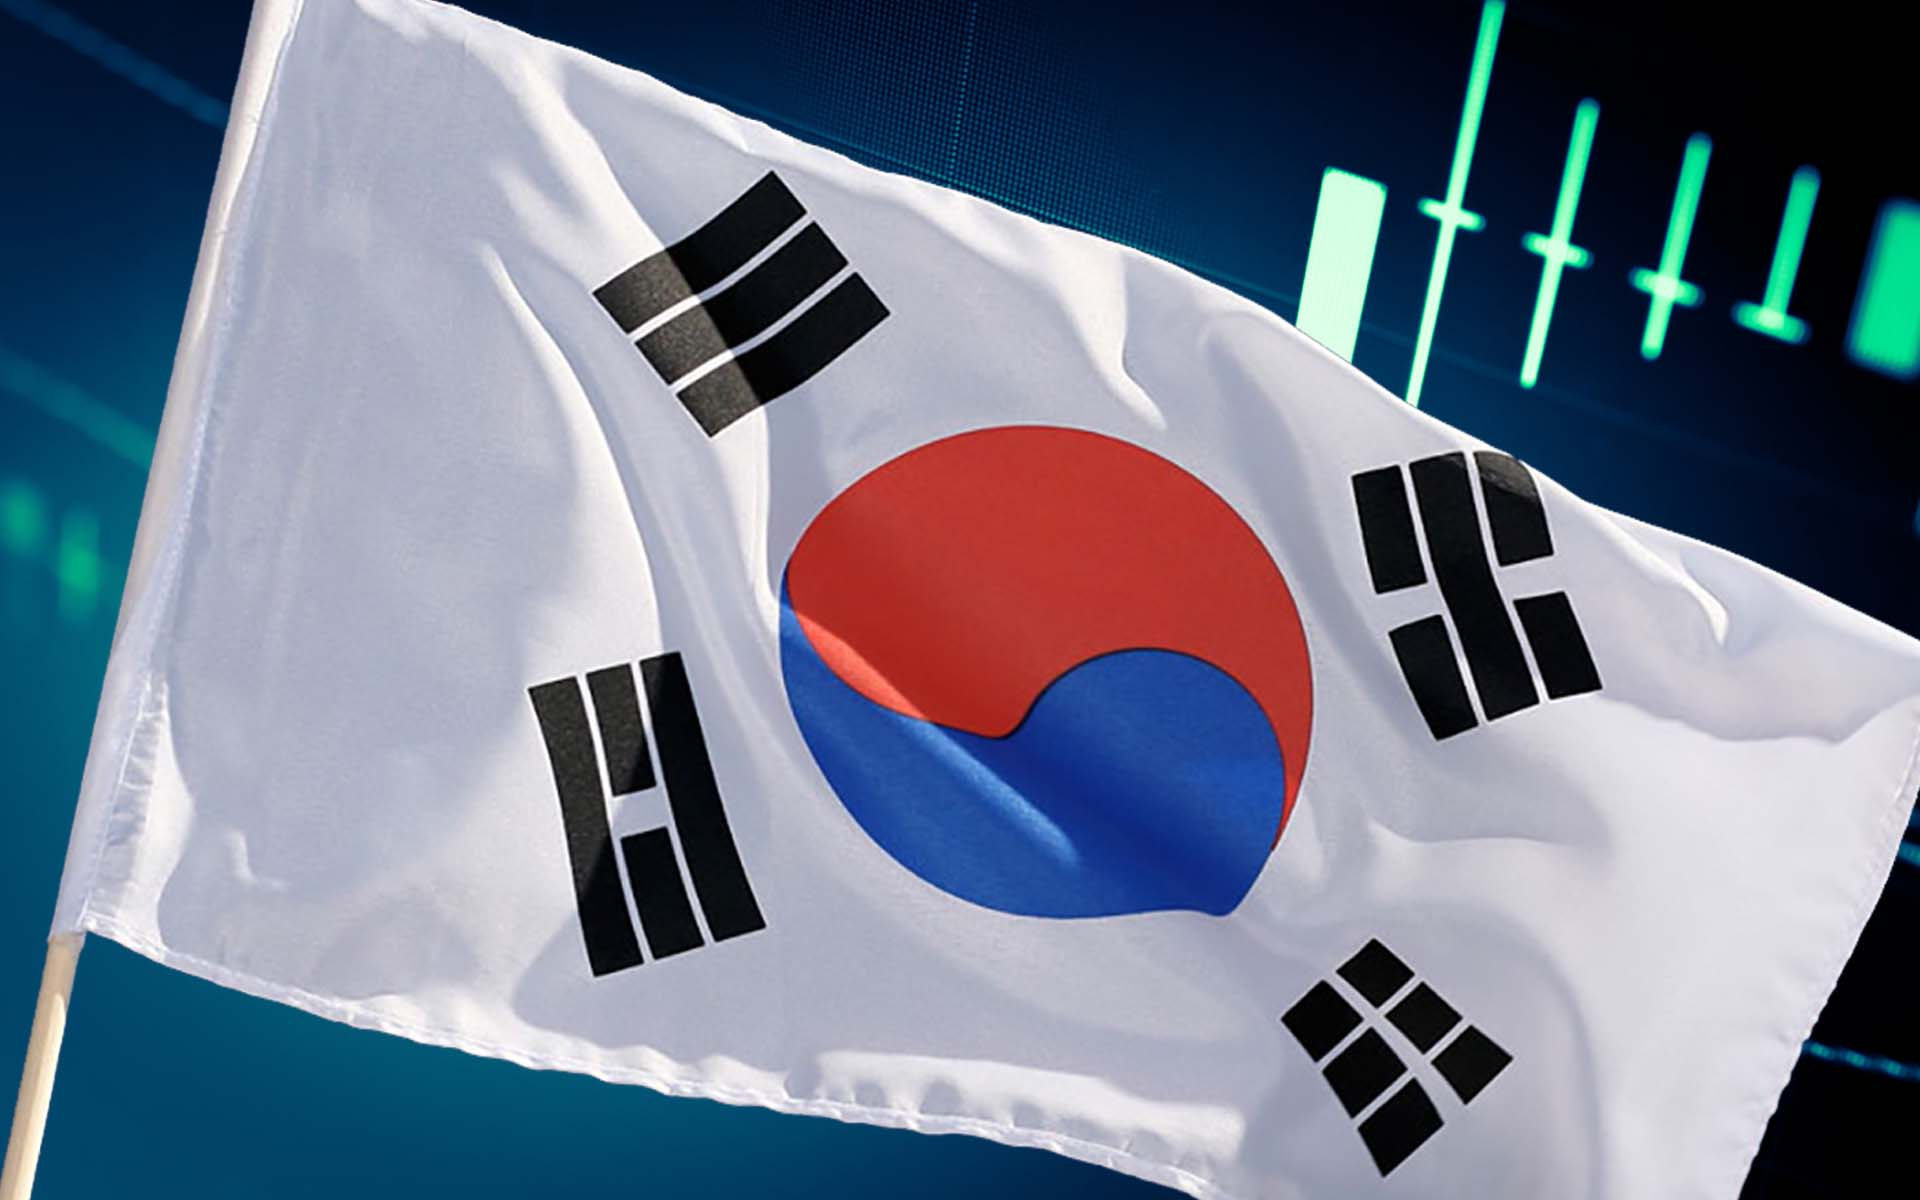 South Korean Government to Exclude Sale, Brokerage of Digital Assets from Venture Business